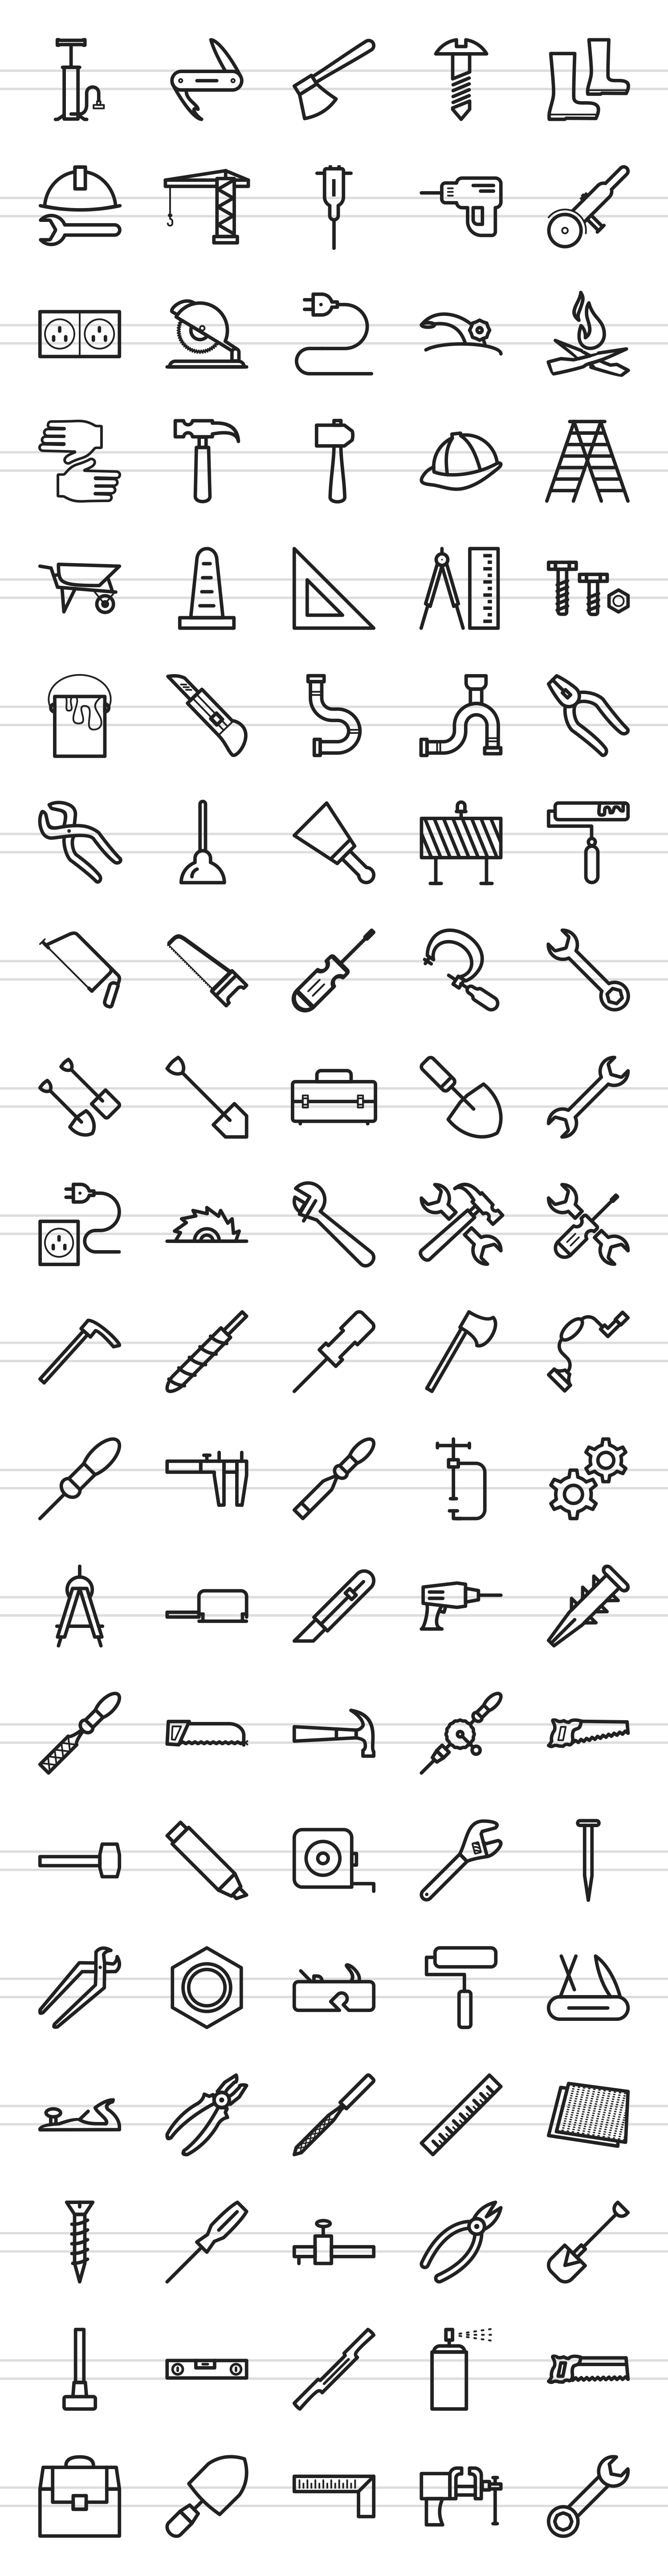 100 Tools Line Icons example image 2